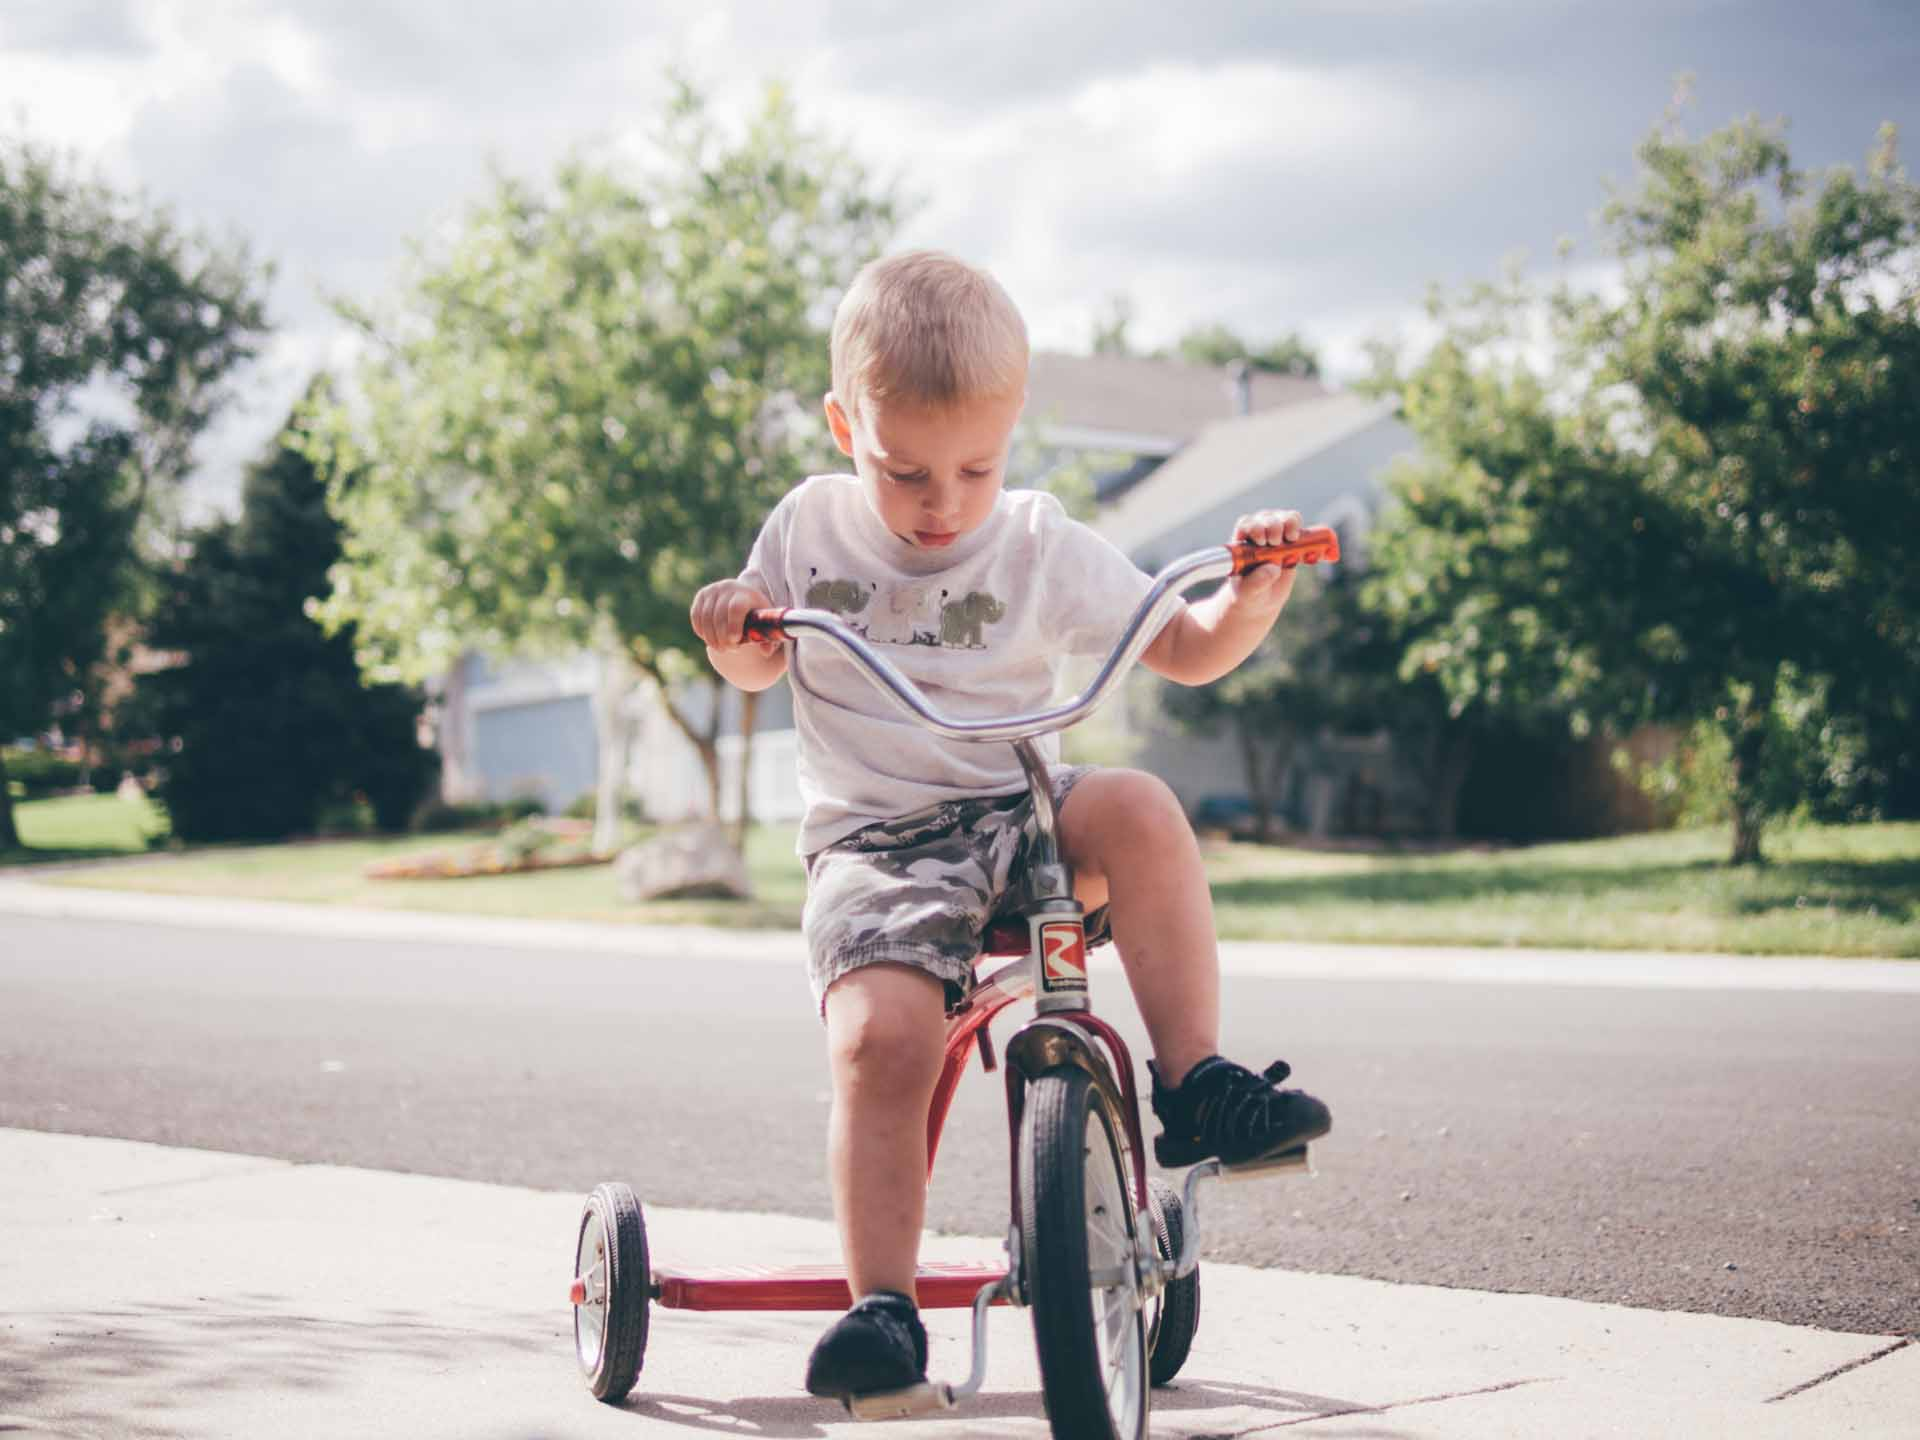 My son, Noah, learning to ride a tricycle at his grandparent's house in Colorado. Photo taken with the E-M10 and Olympus 75mm f/1.8 lens.